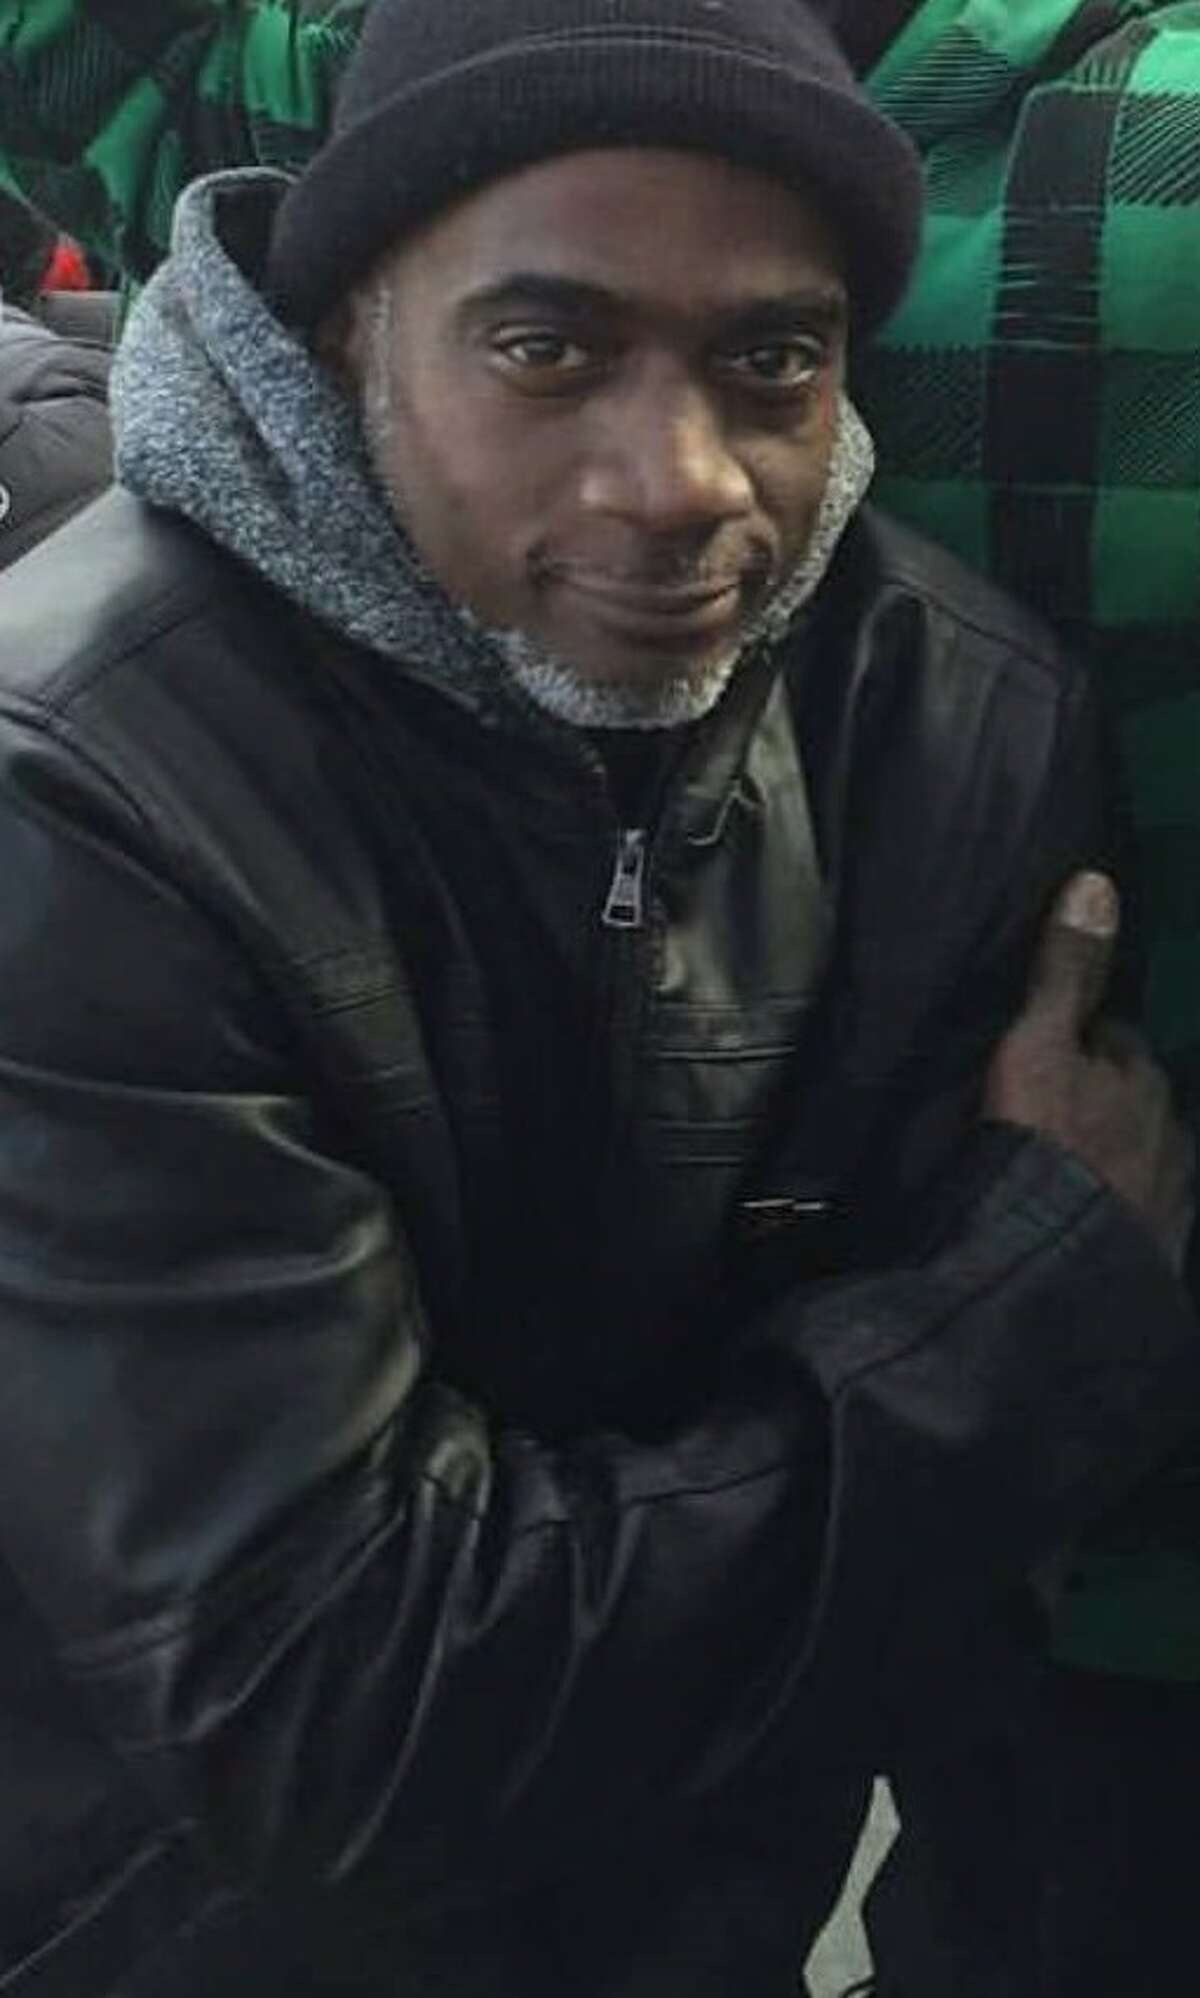 Dariel Young, 53, of Arbor Hill has been missing since Oct. 25, 2016. He was last seen in the area of Upper Second Avenue in Albany's South End.